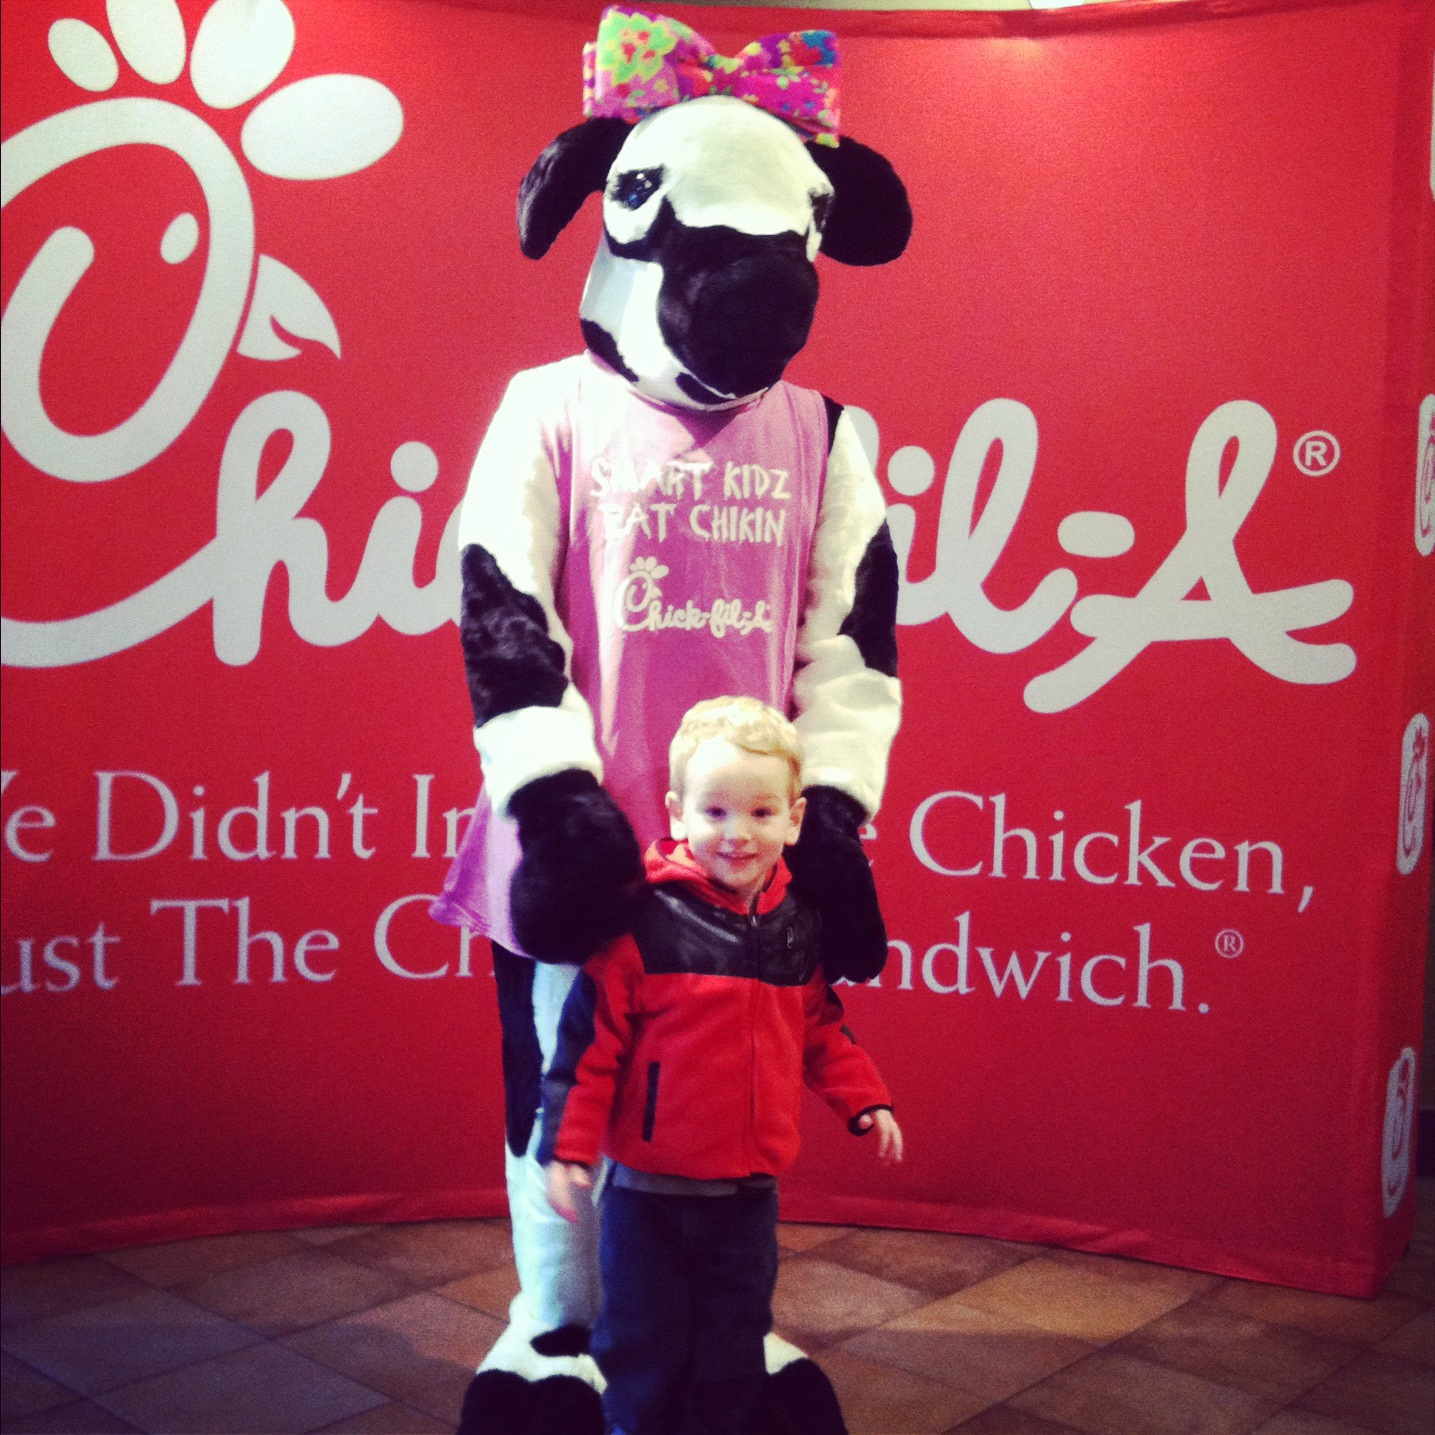 oh so cynthia chick fil a debuts new kids meal options